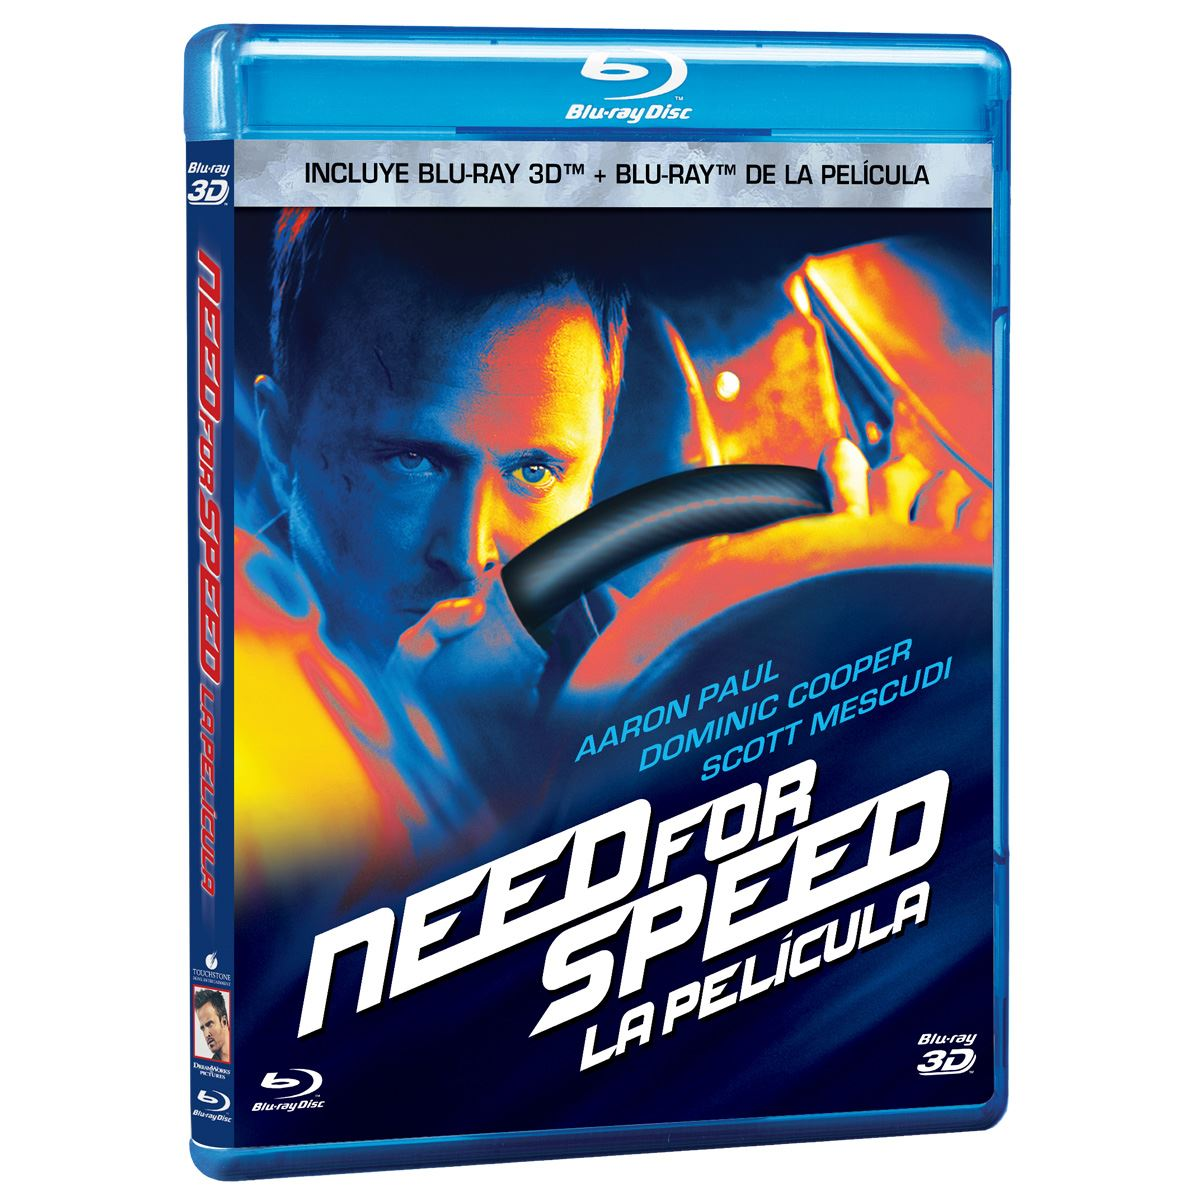 Br/3d need for speed la película combo pack  - Sanborns